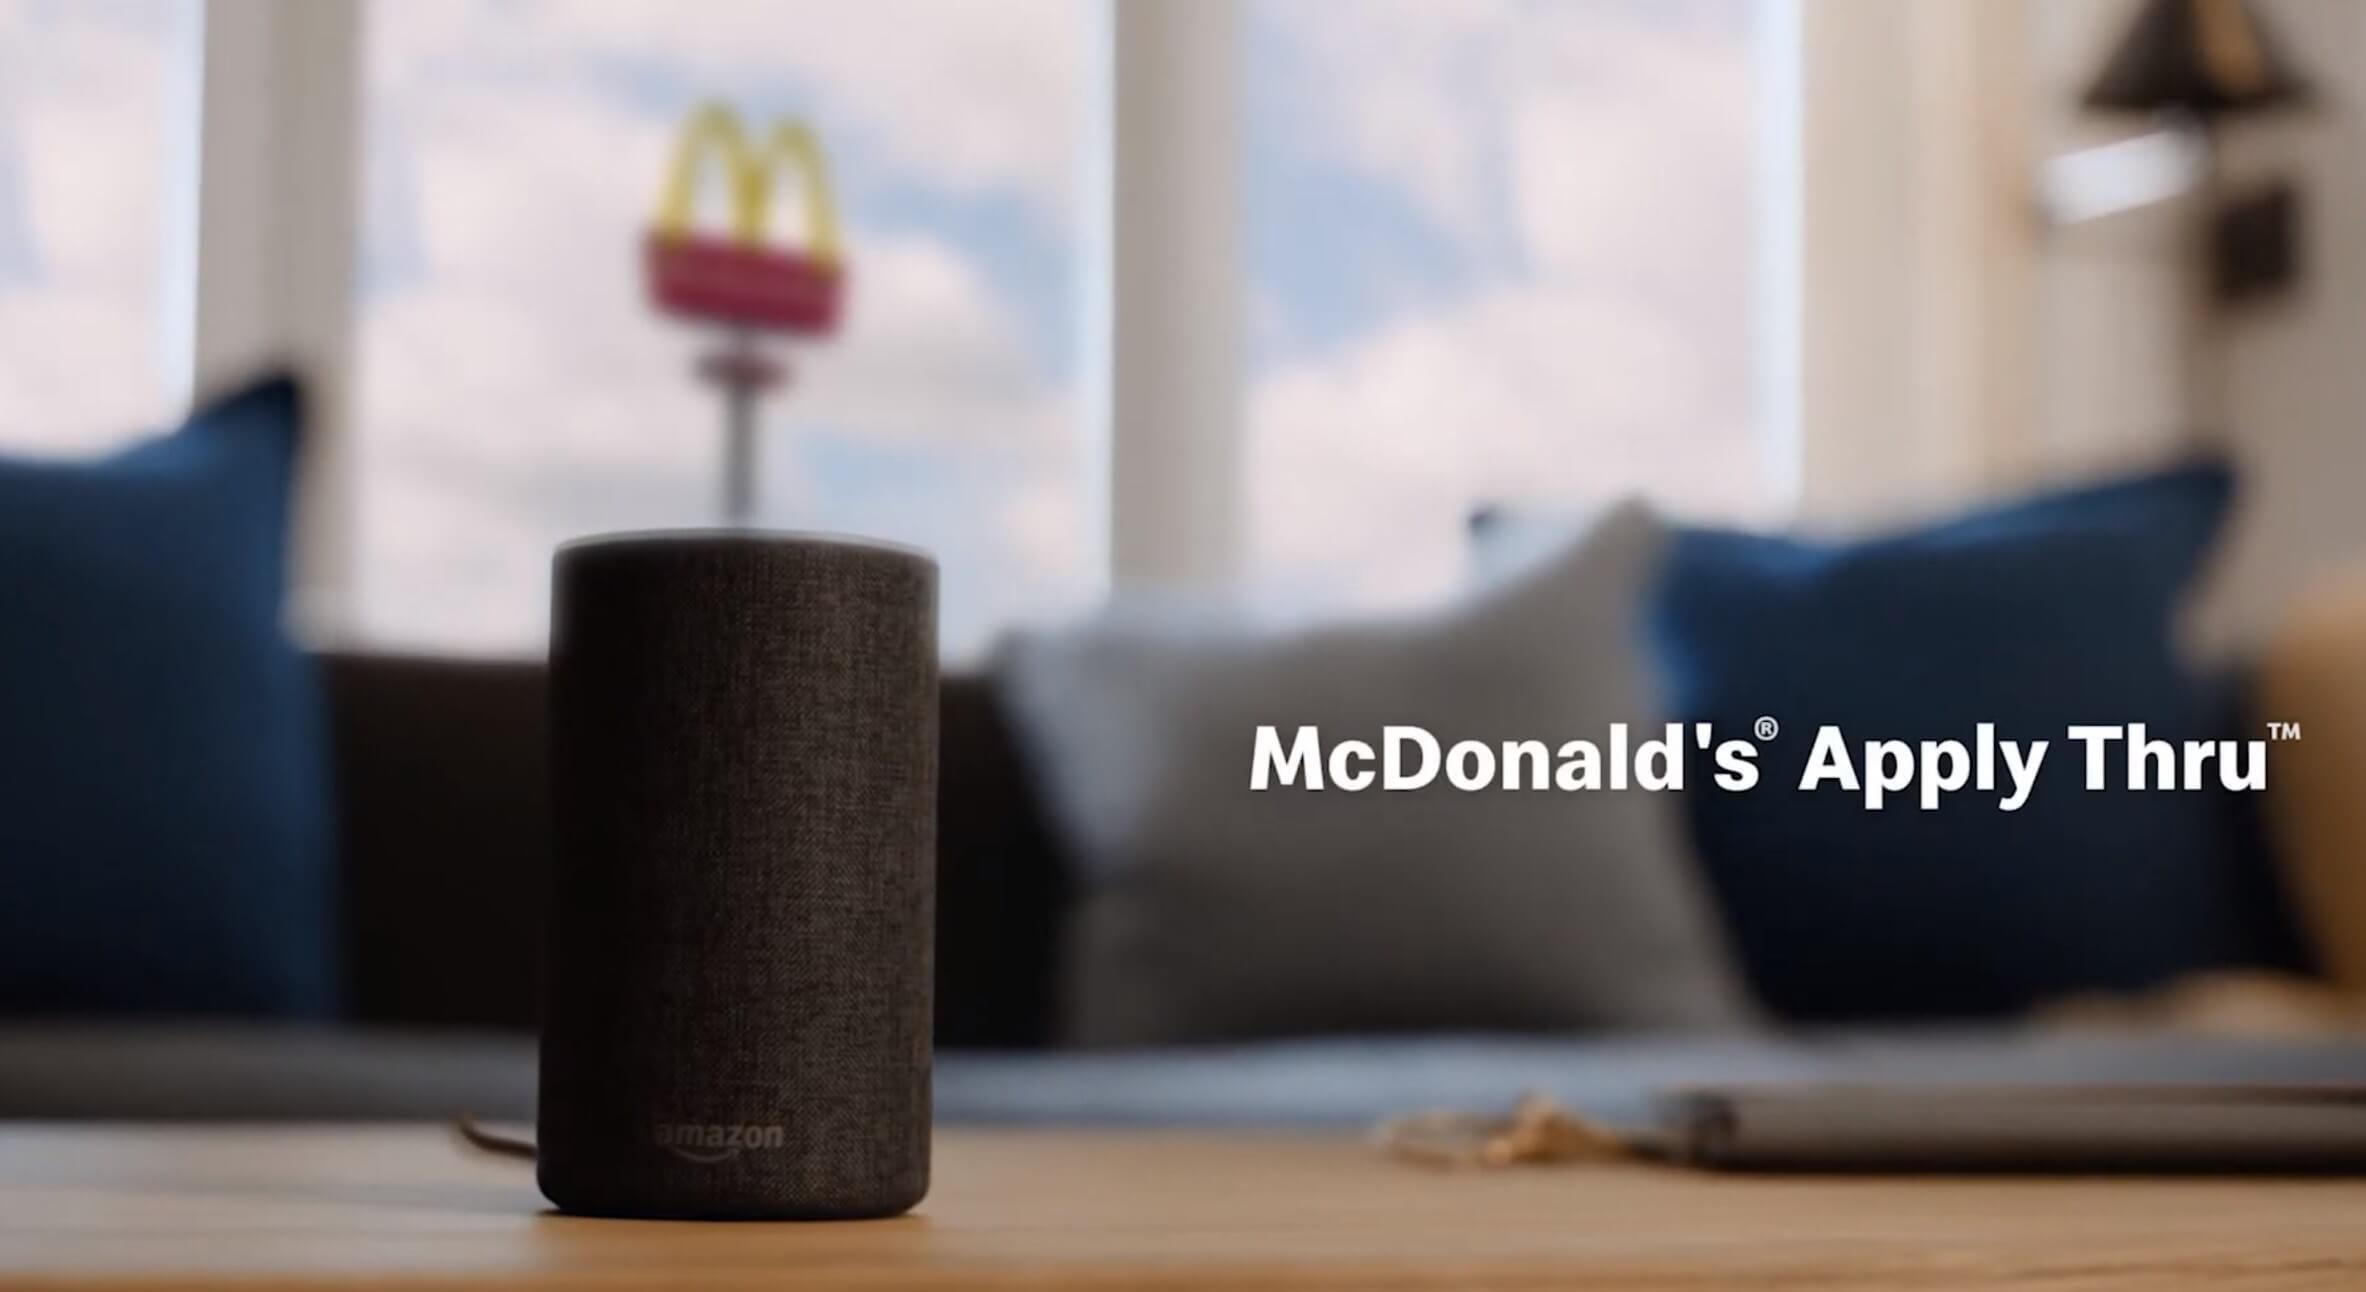 You can now apply for a job at McDonald's using Alexa and Google Assistant